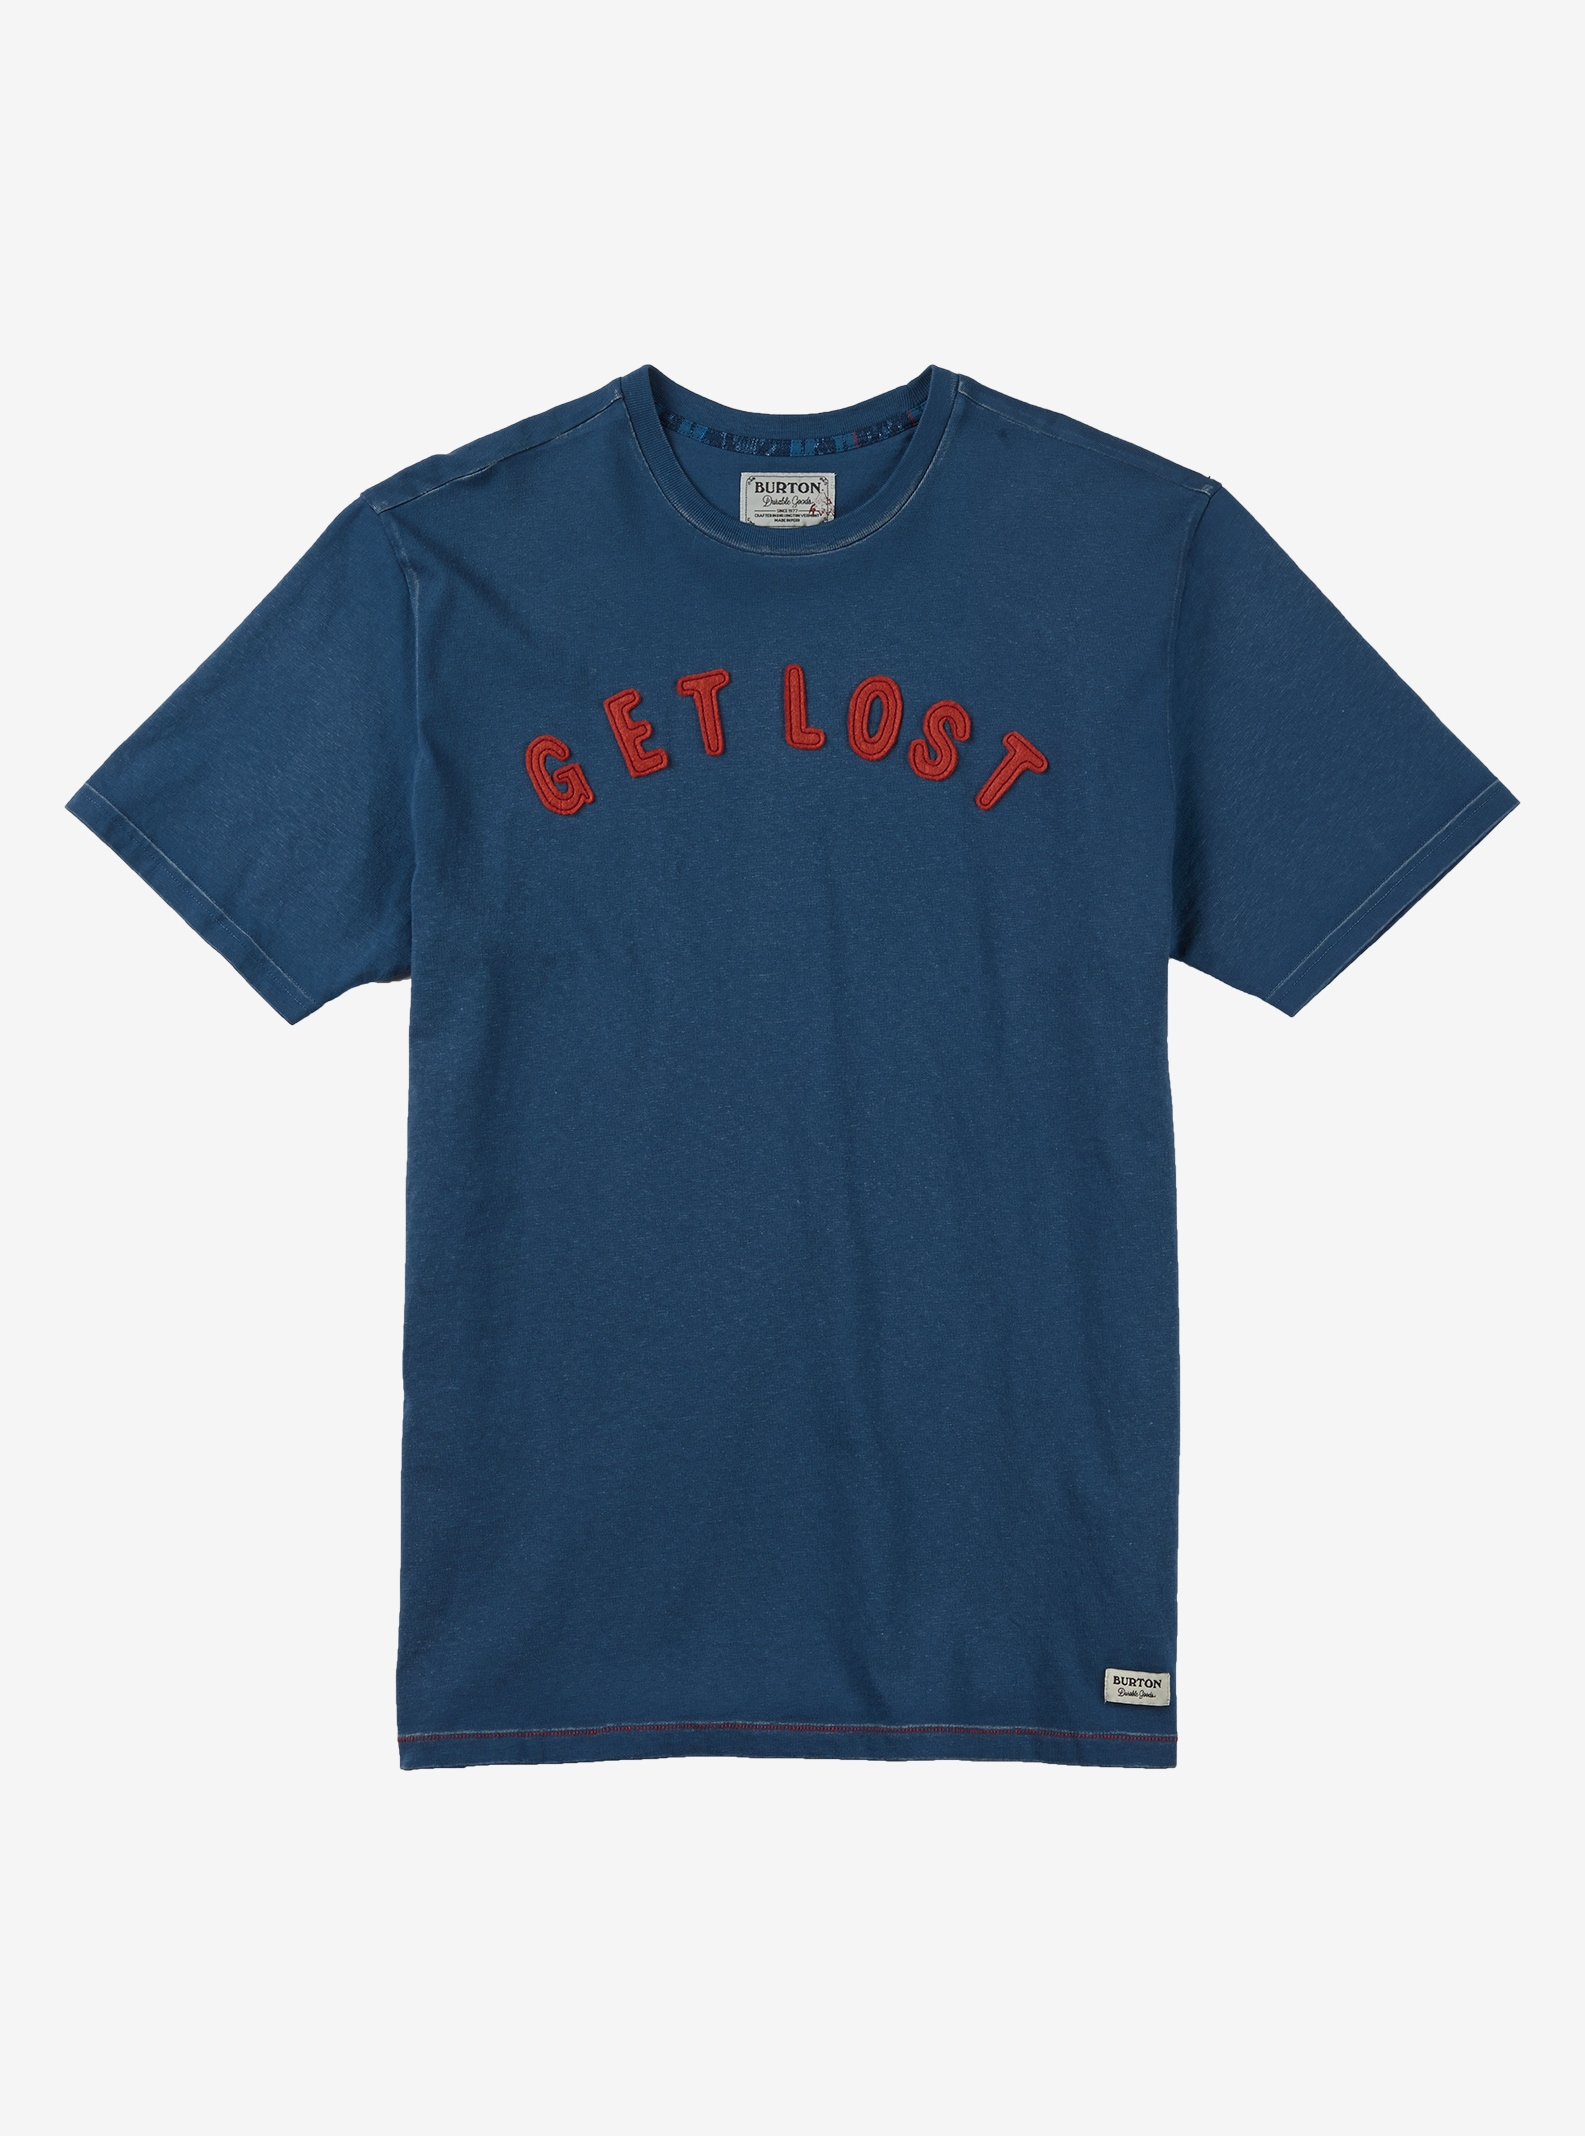 Burton Lost and Found Short Sleeve T Shirt shown in Indigo